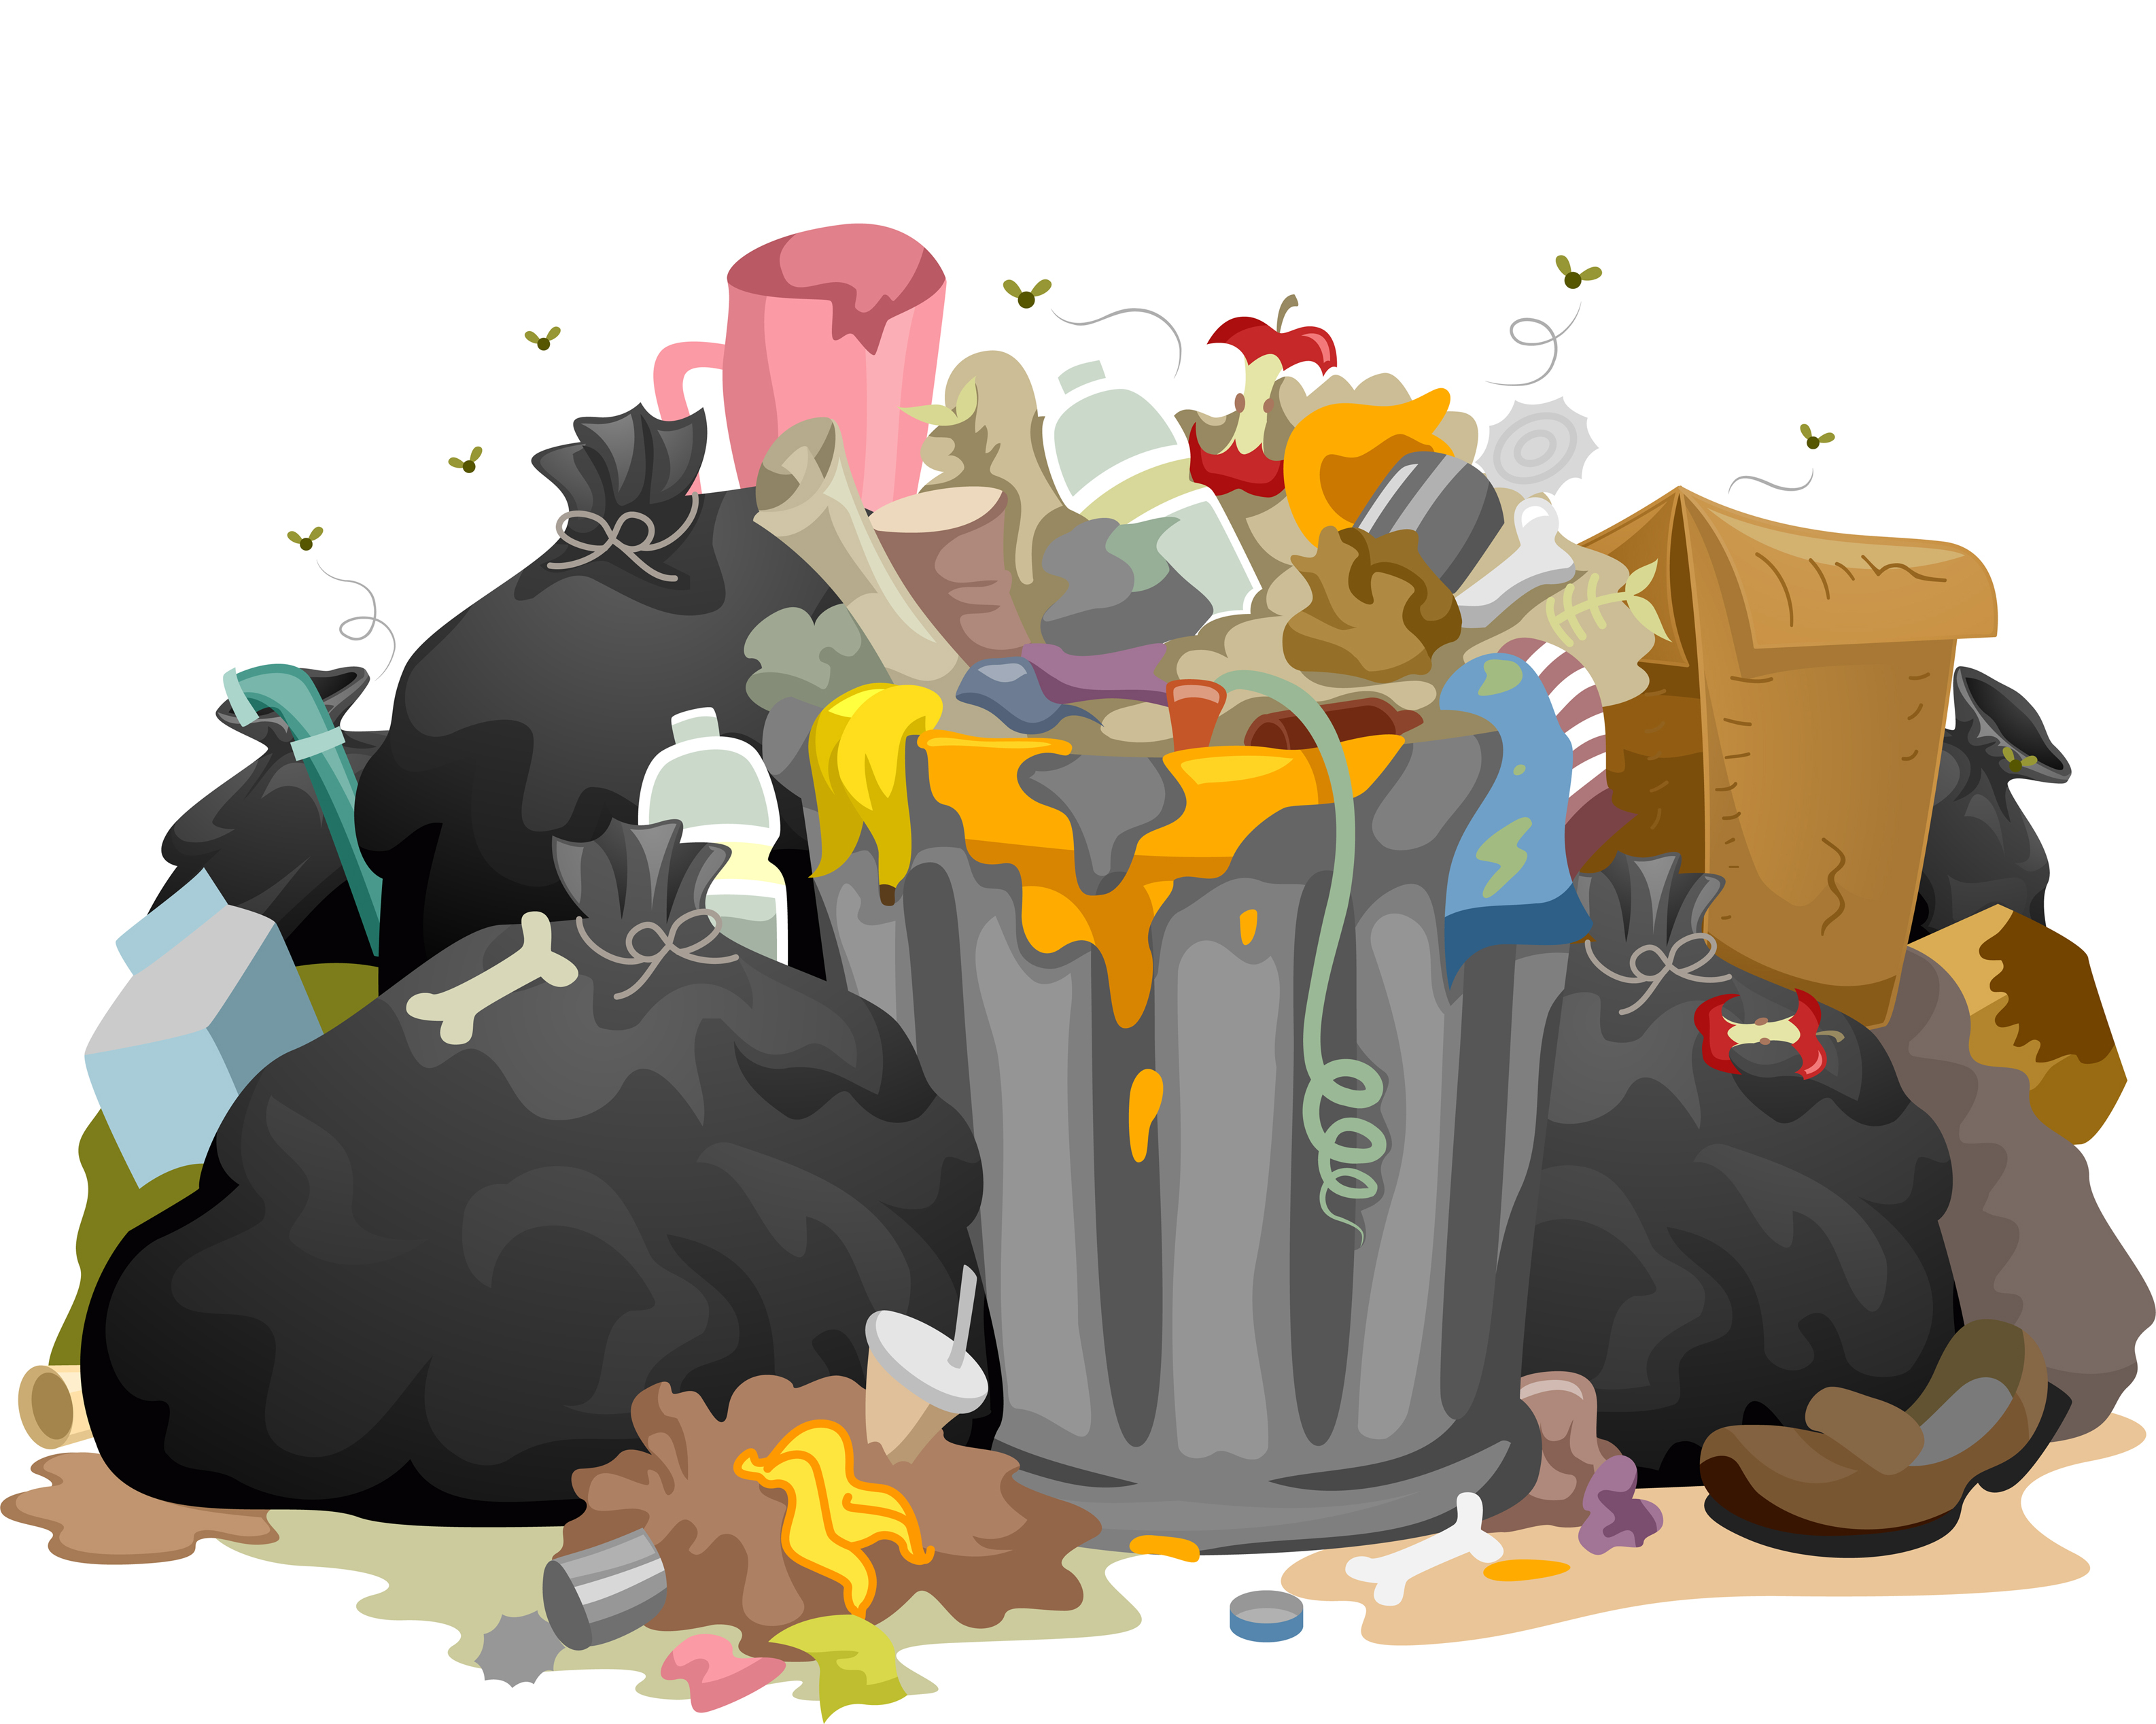 CHINA'S RECYCLE BAN… EFFECTING THE WORLD